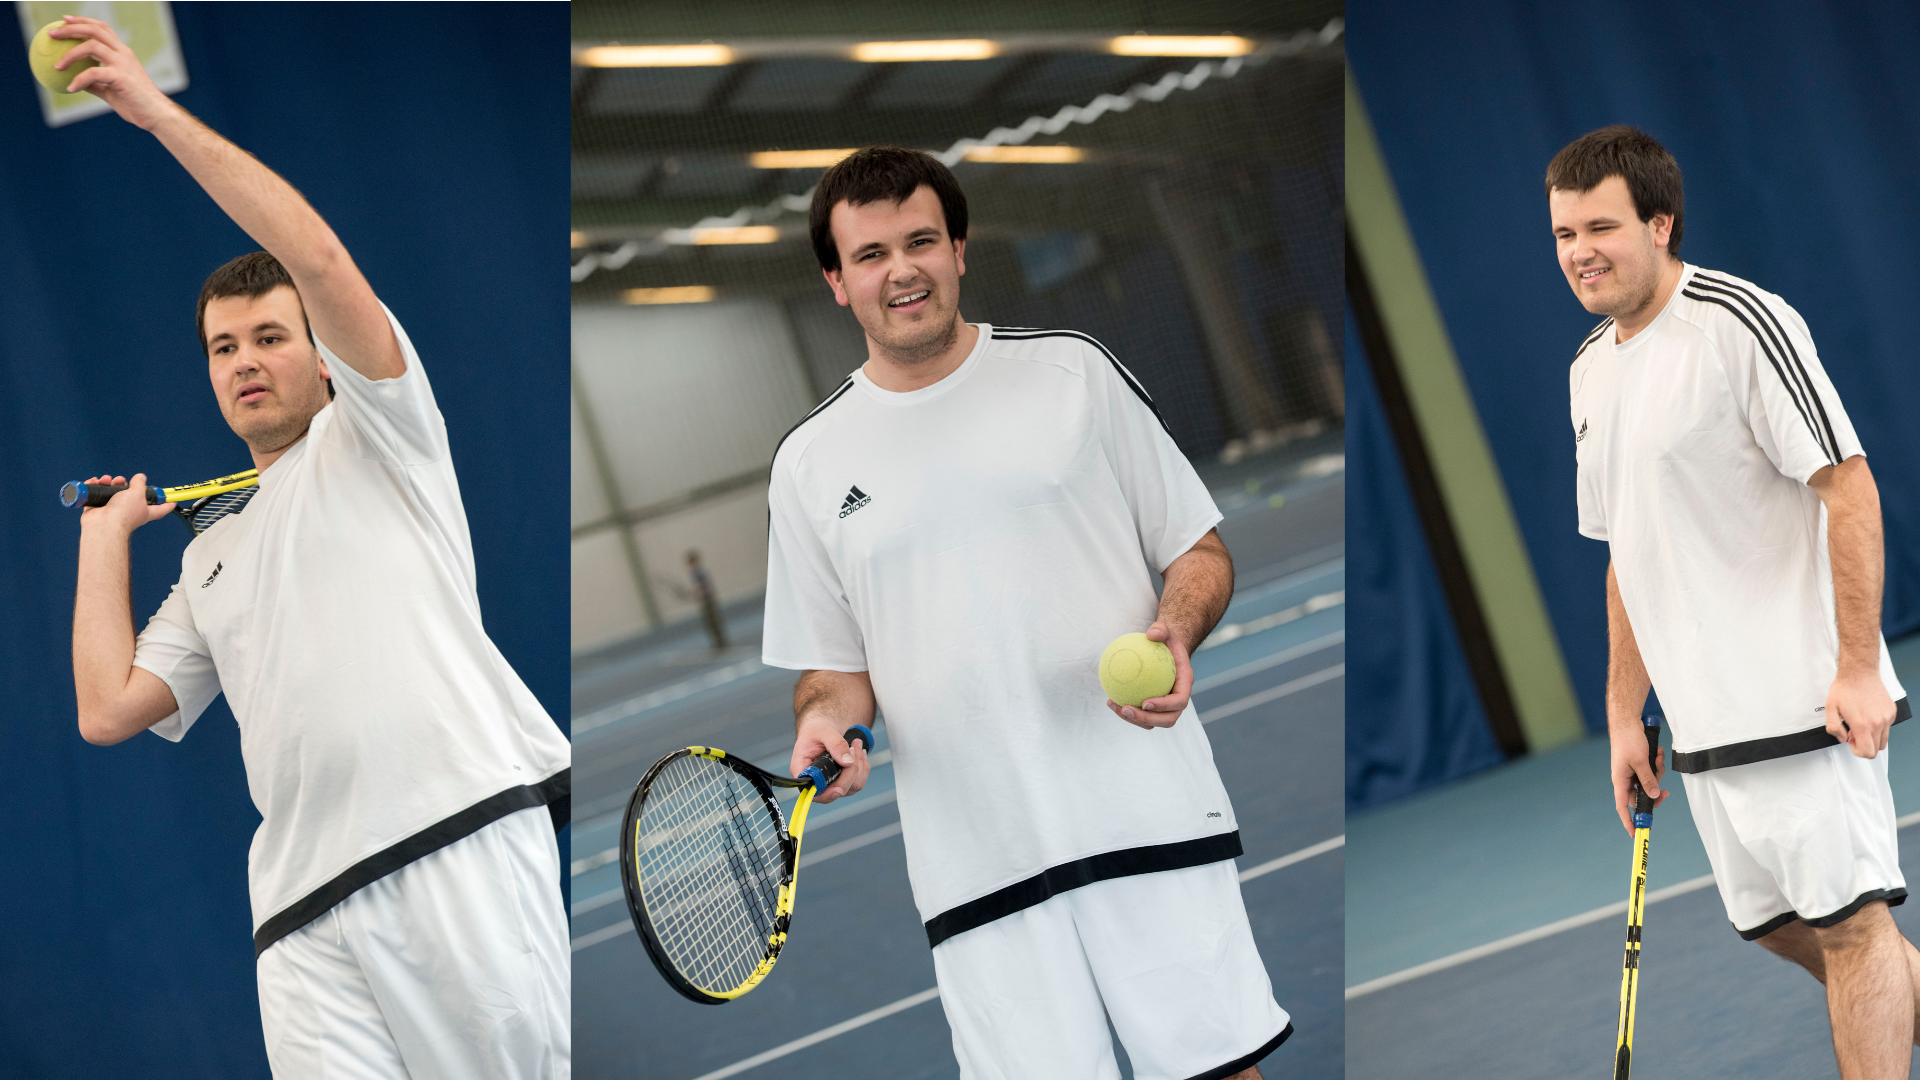 Nottingham Tennis Centre run an inclusive programme which offers Wheelchair tennis and session for visually impaired and players with learning difficulties